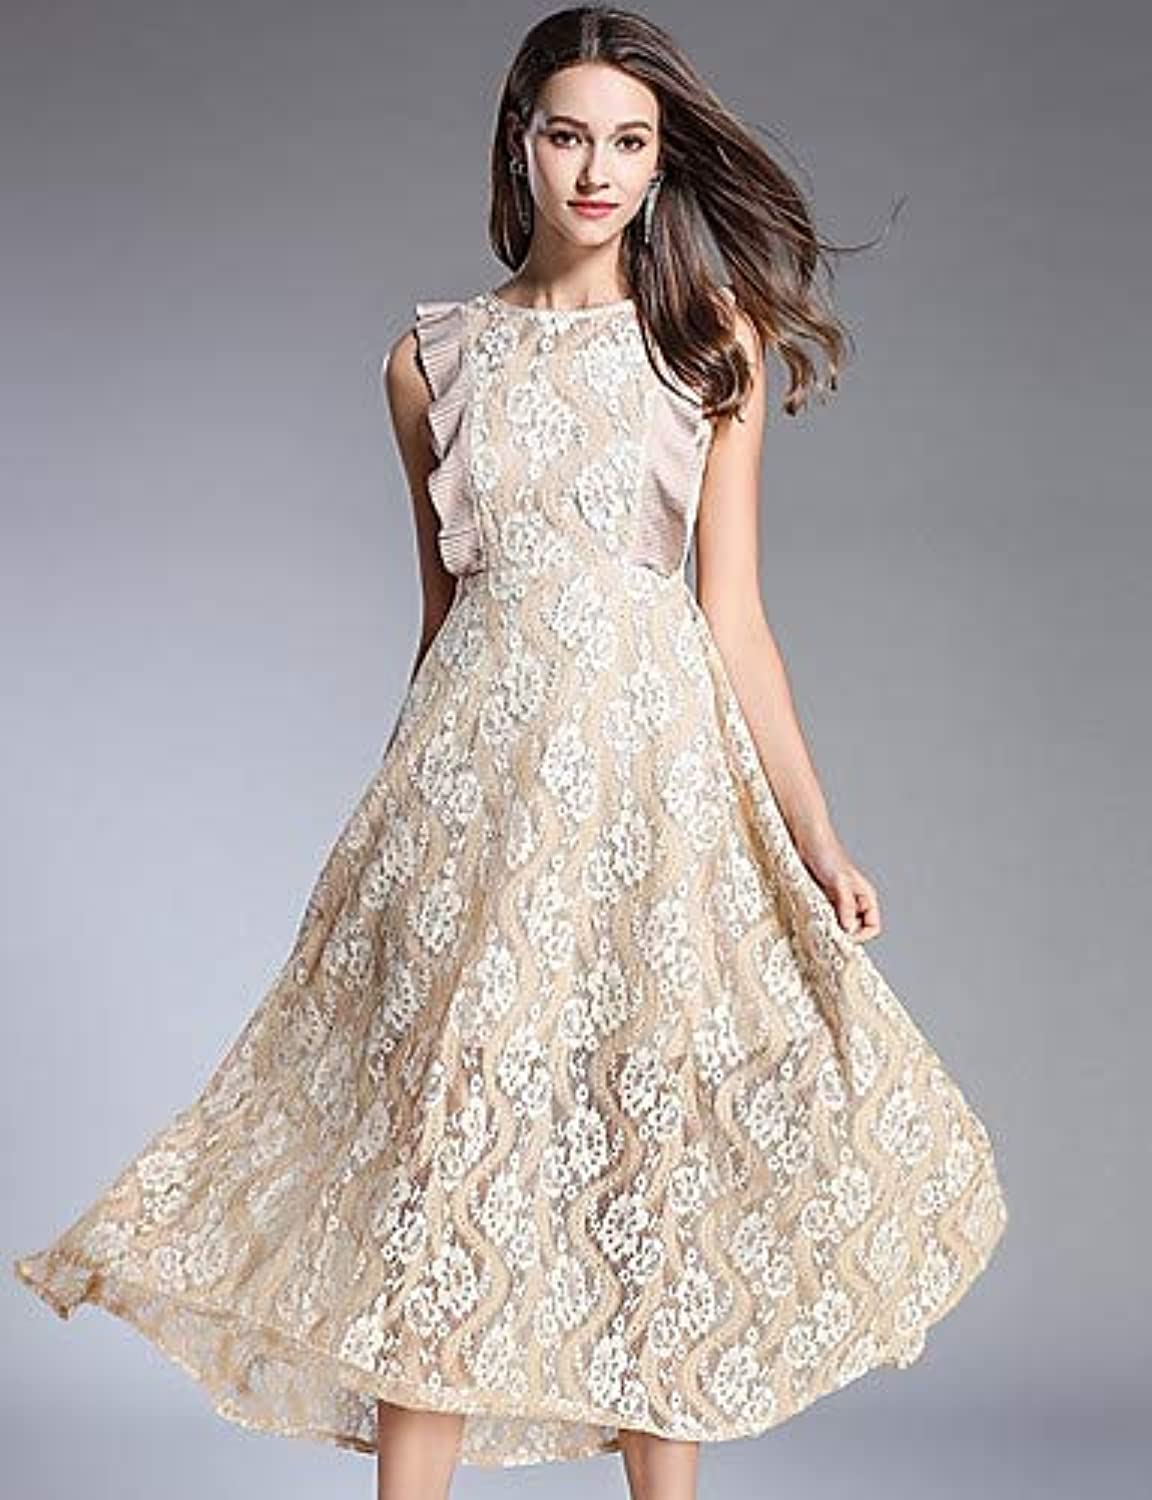 Women's Vintage Basic Swing Dress  Solid colord Floral   Geometric Lace Cut Out Ruffle